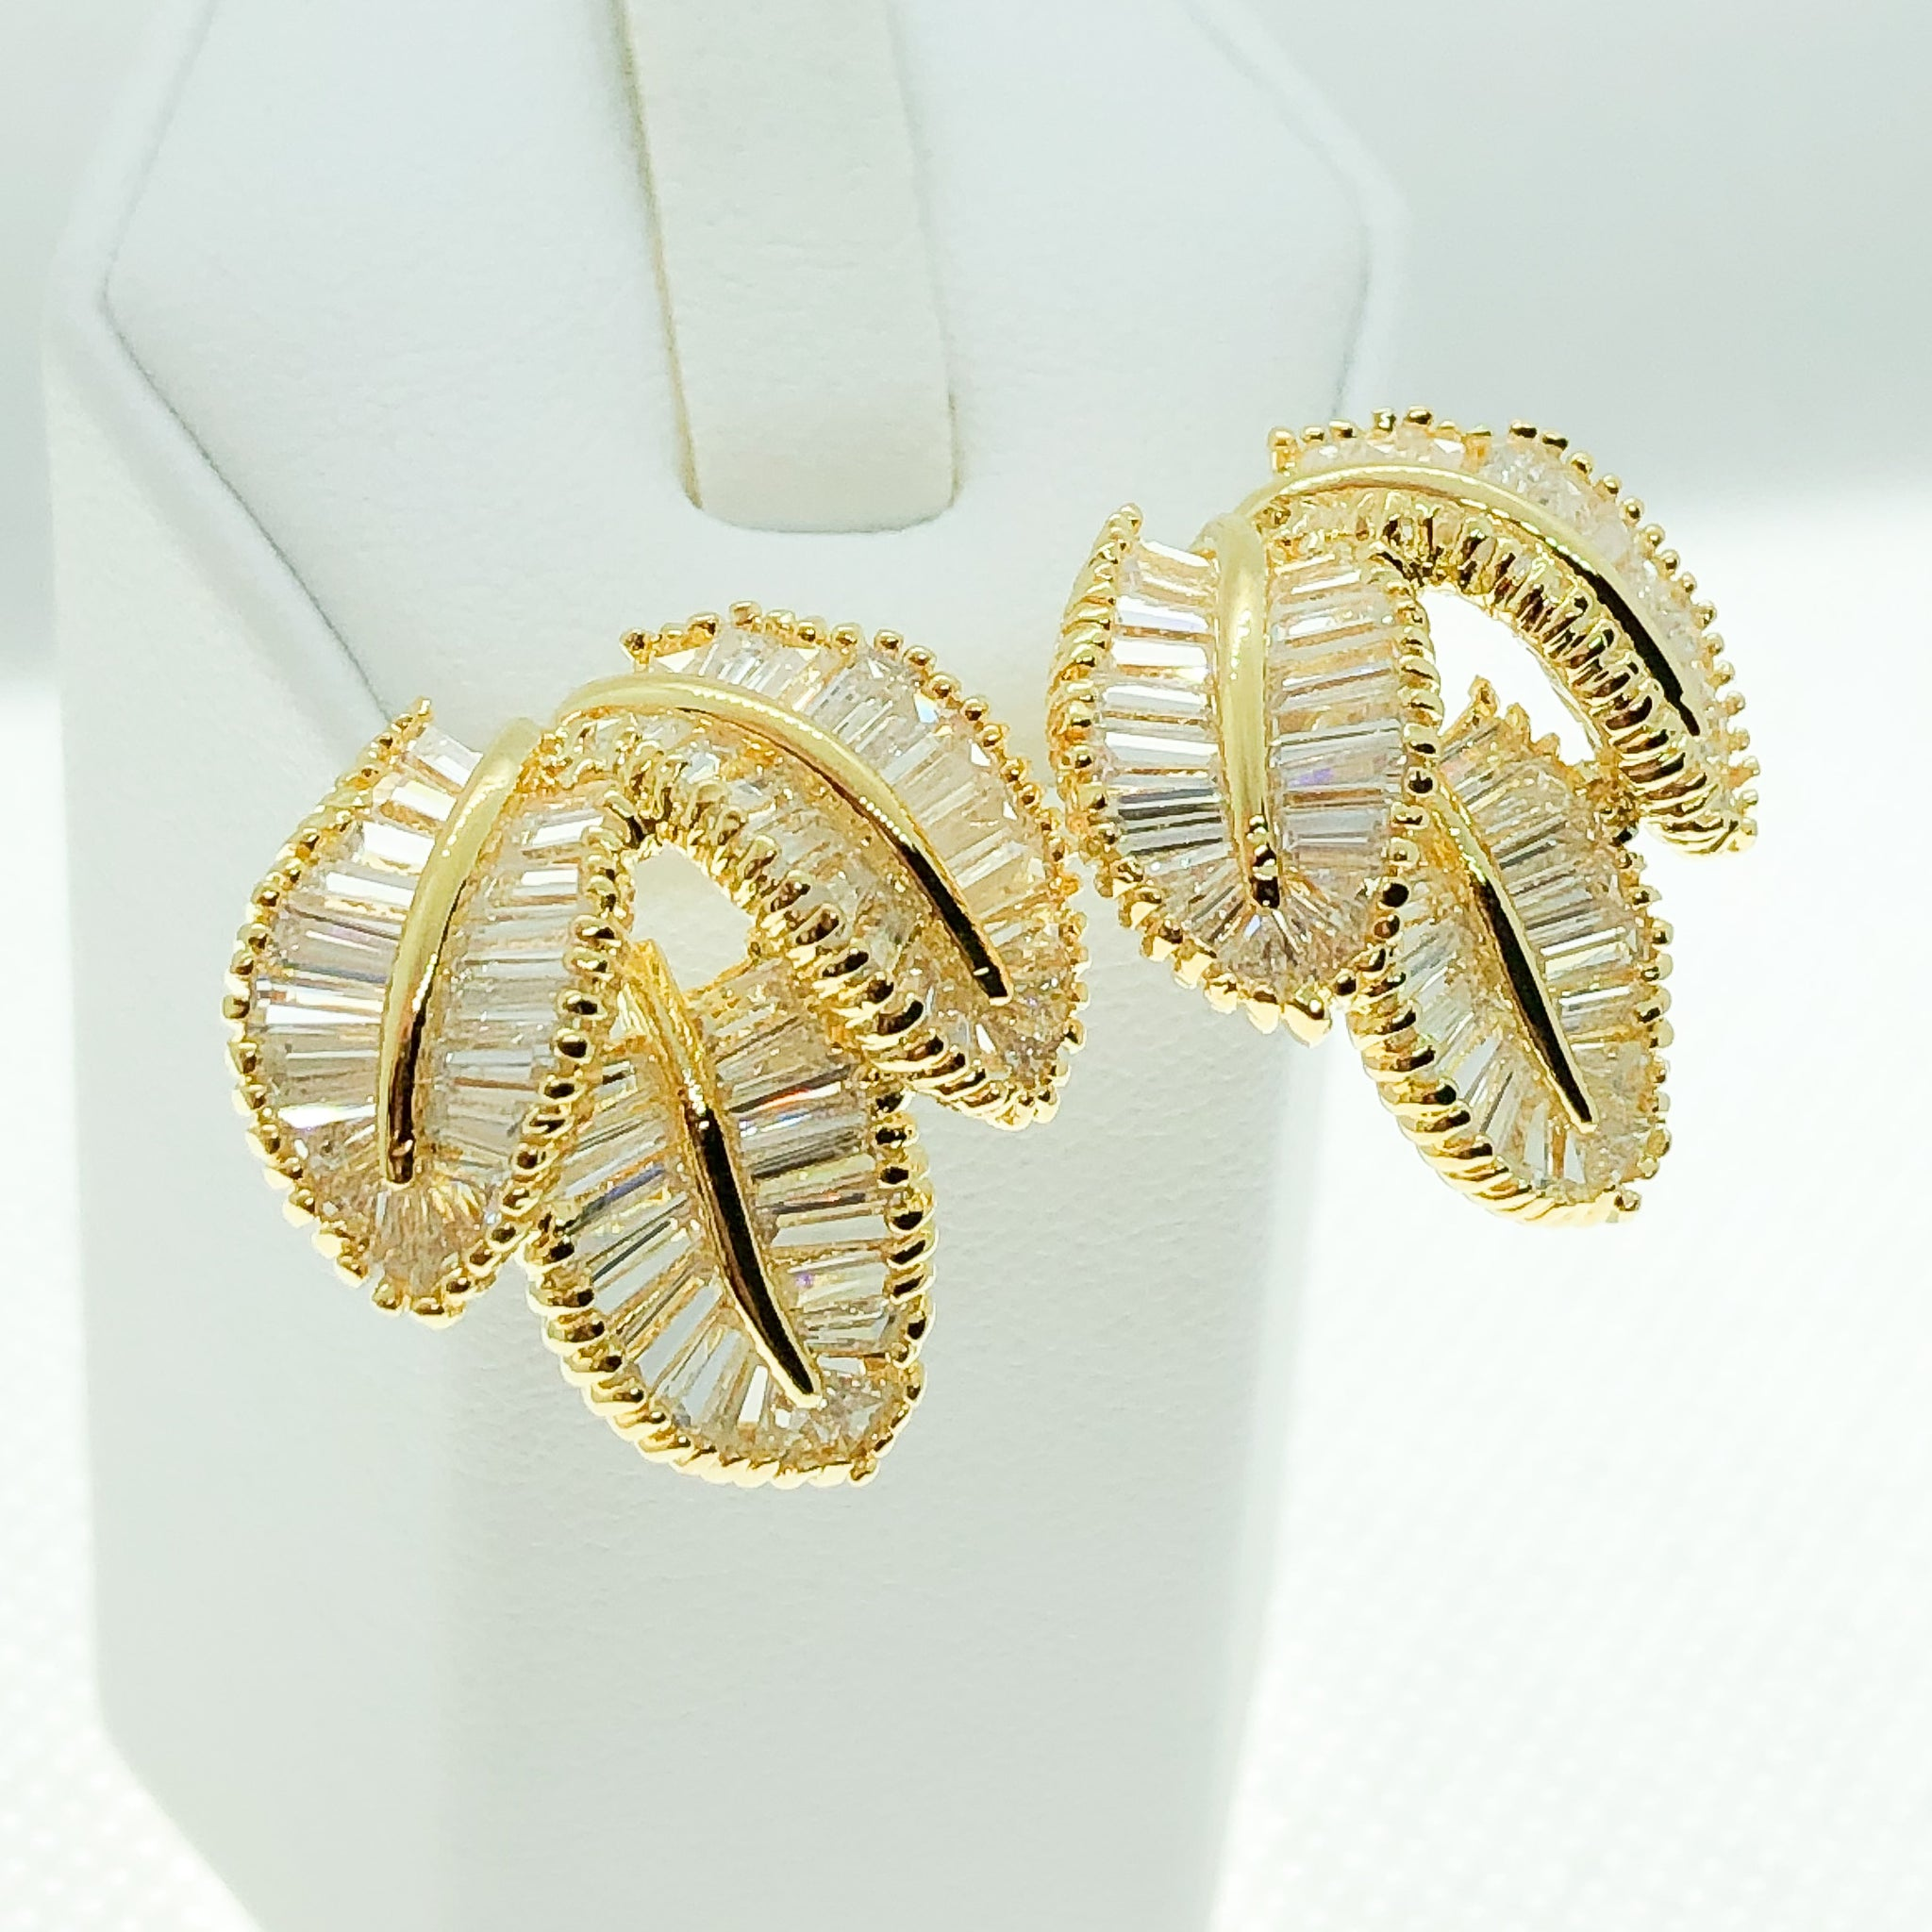 ID: E2353 WOMEN JEWELRY 18K YELLOW GOLD GF CLEAR STONES EARRINGS FASHION LADY WEDDING PARTY STUD UNIQUE THREE LEAVES DESIGN